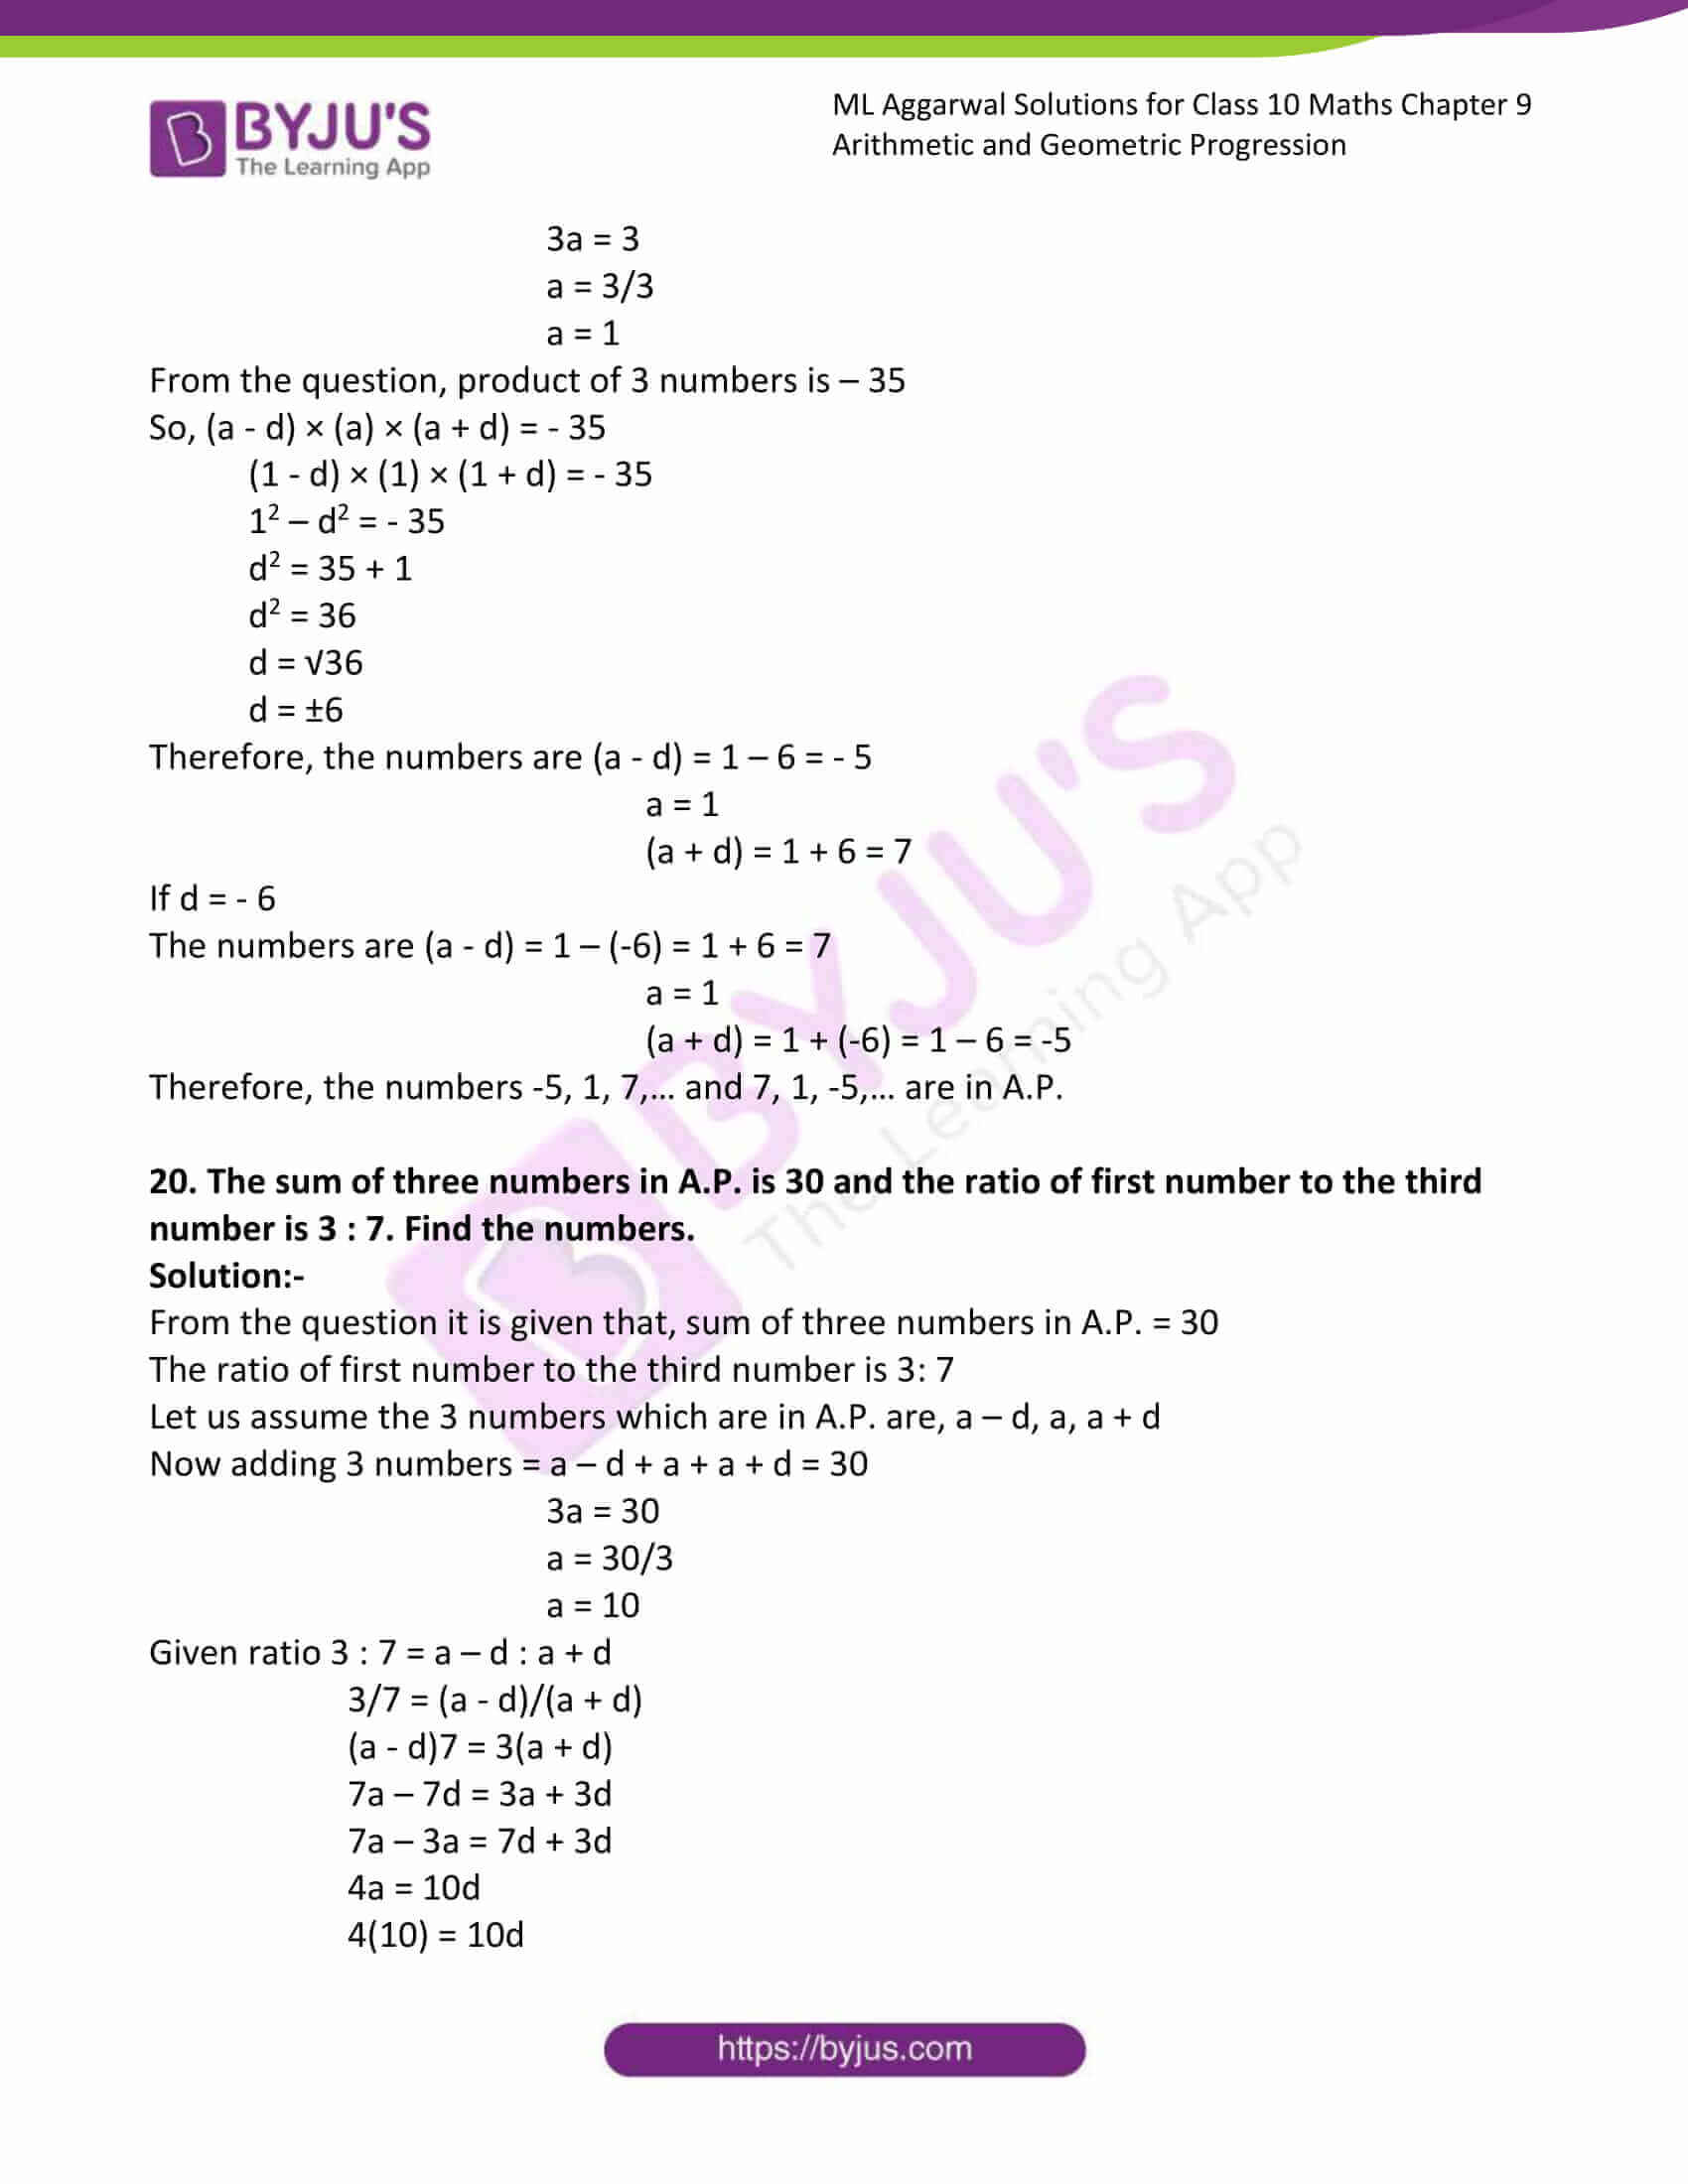 ml aggarwal solutions class 10 maths chapter 9 19